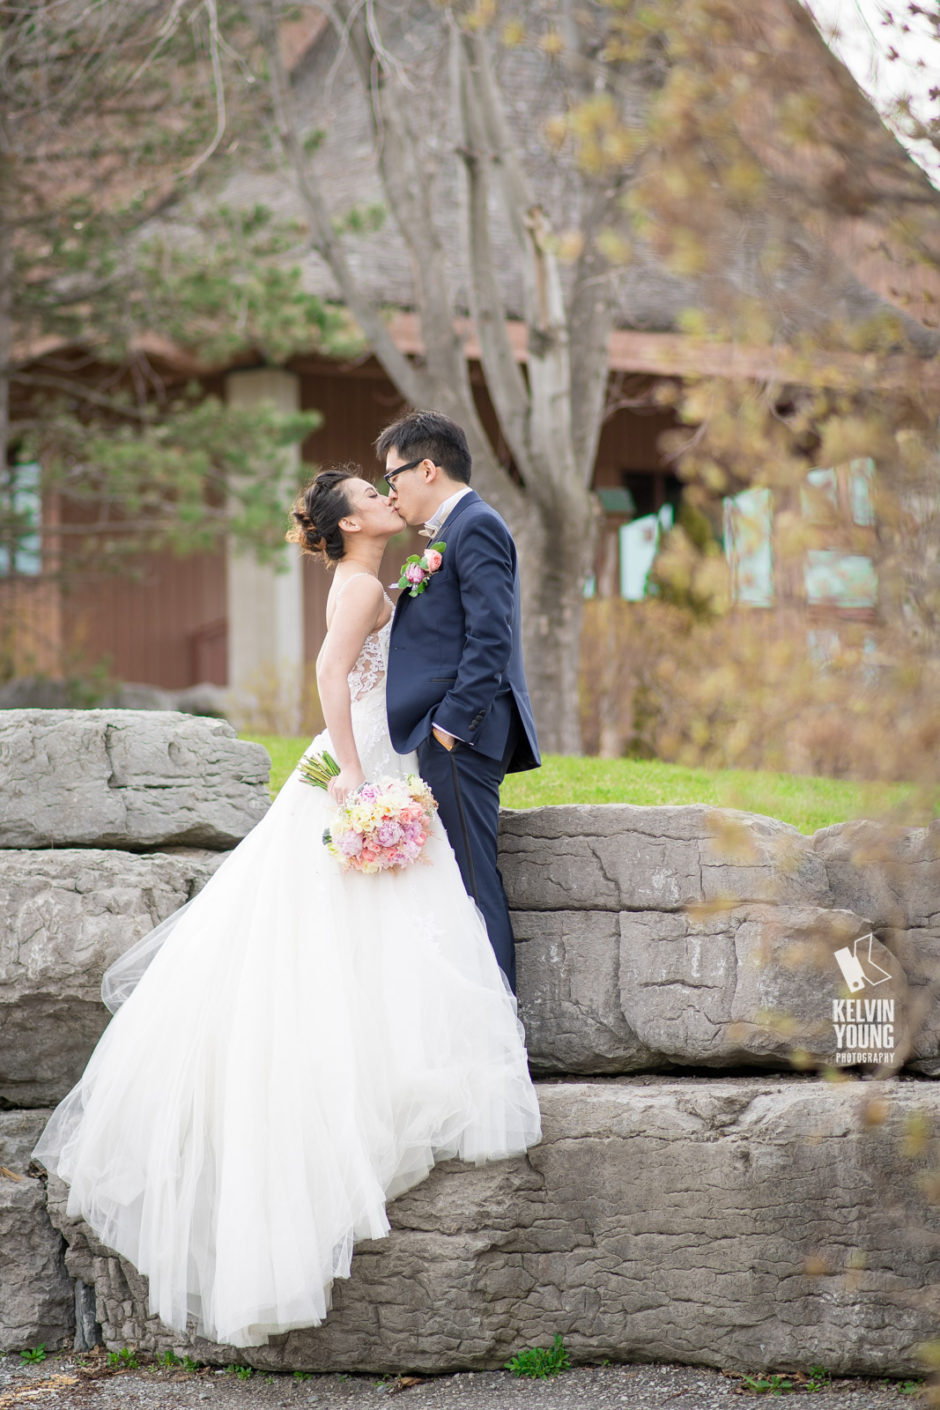 KYP16-Karen-Matthew-Toronto-Wedding_035